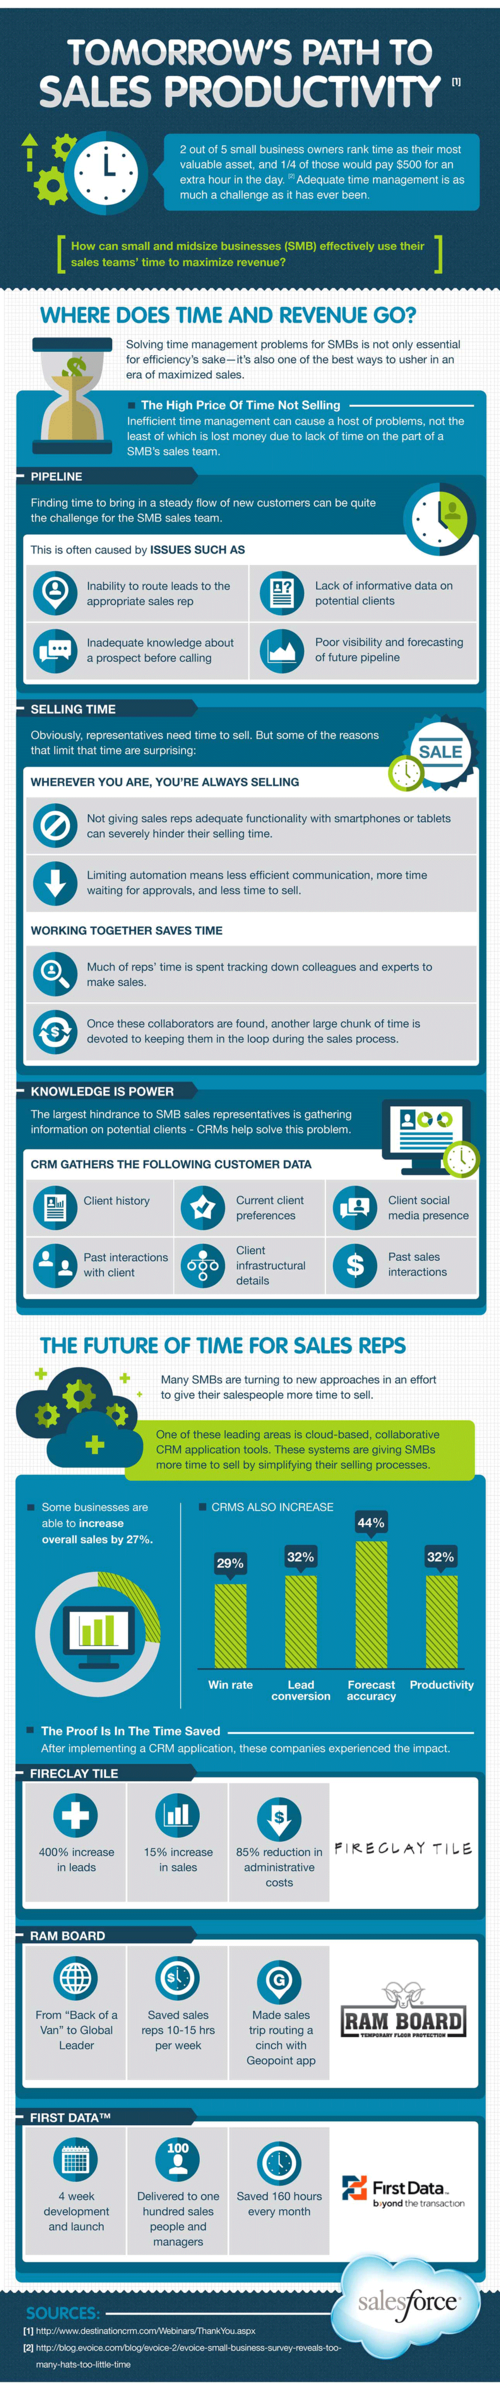 Increasing Sales Productivity